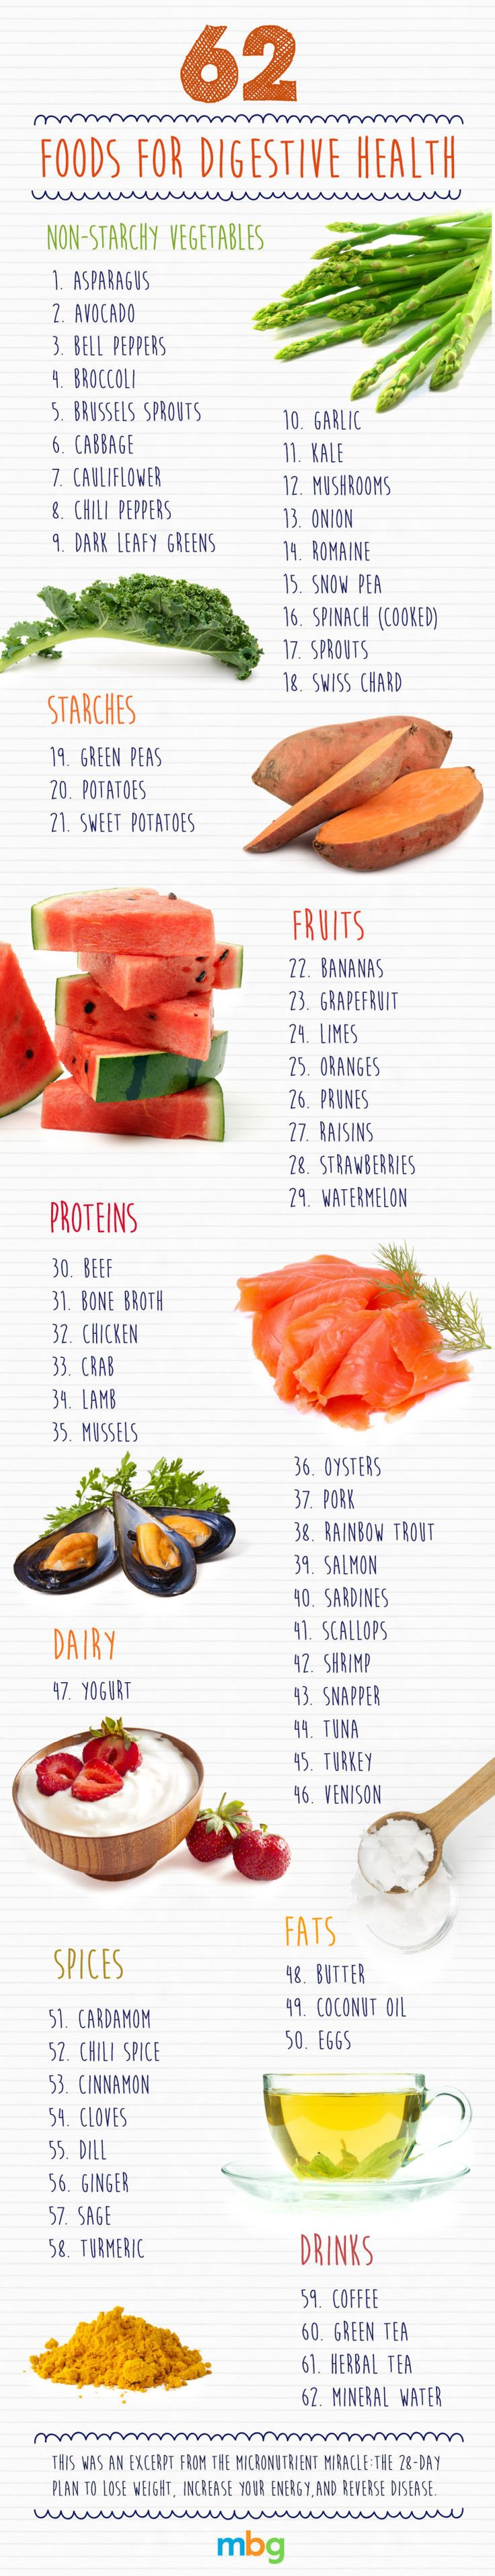 Weight loss meals for breakfast lunch and dinner